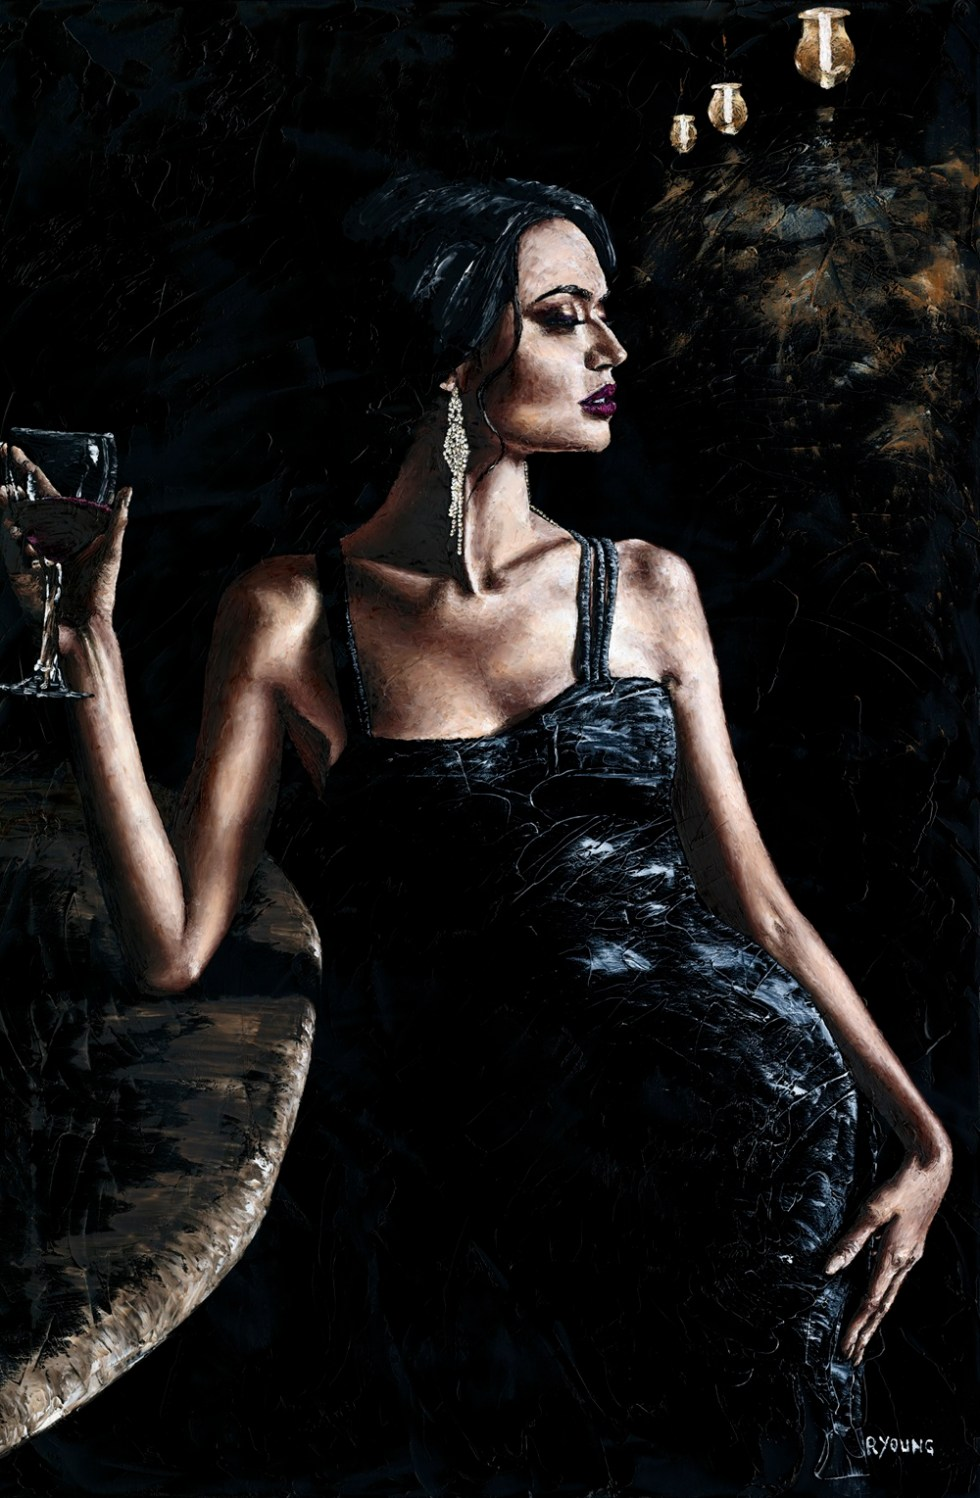 Windsor Contemporary Art Fair - Nightcap. Fine art original oil painting on a 91cm x 61cm stretched canvas created using a knife.